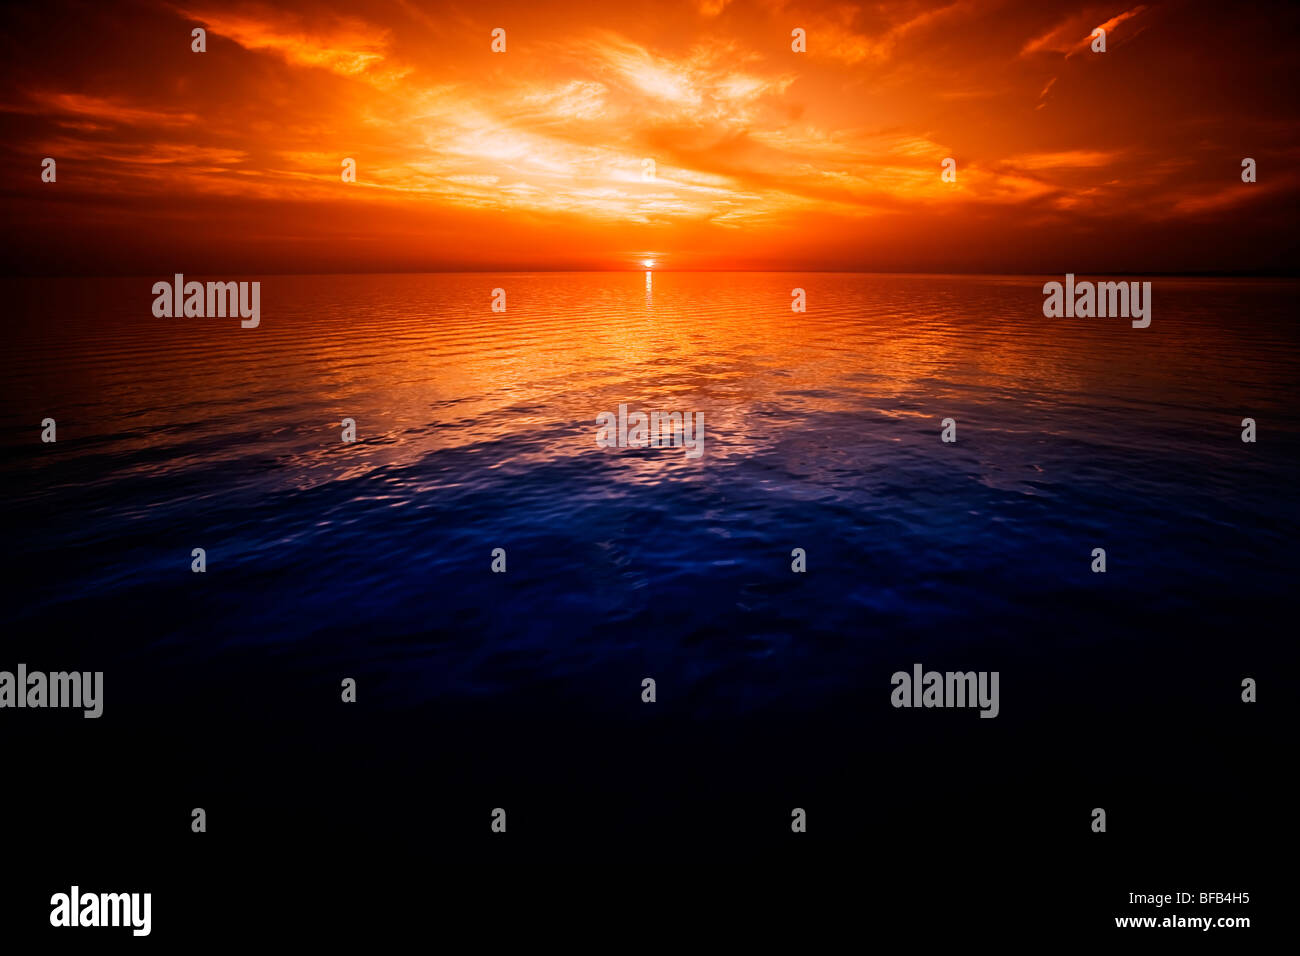 Calming view over the Adriatic Sea at sunset, Croatia - Stock Image